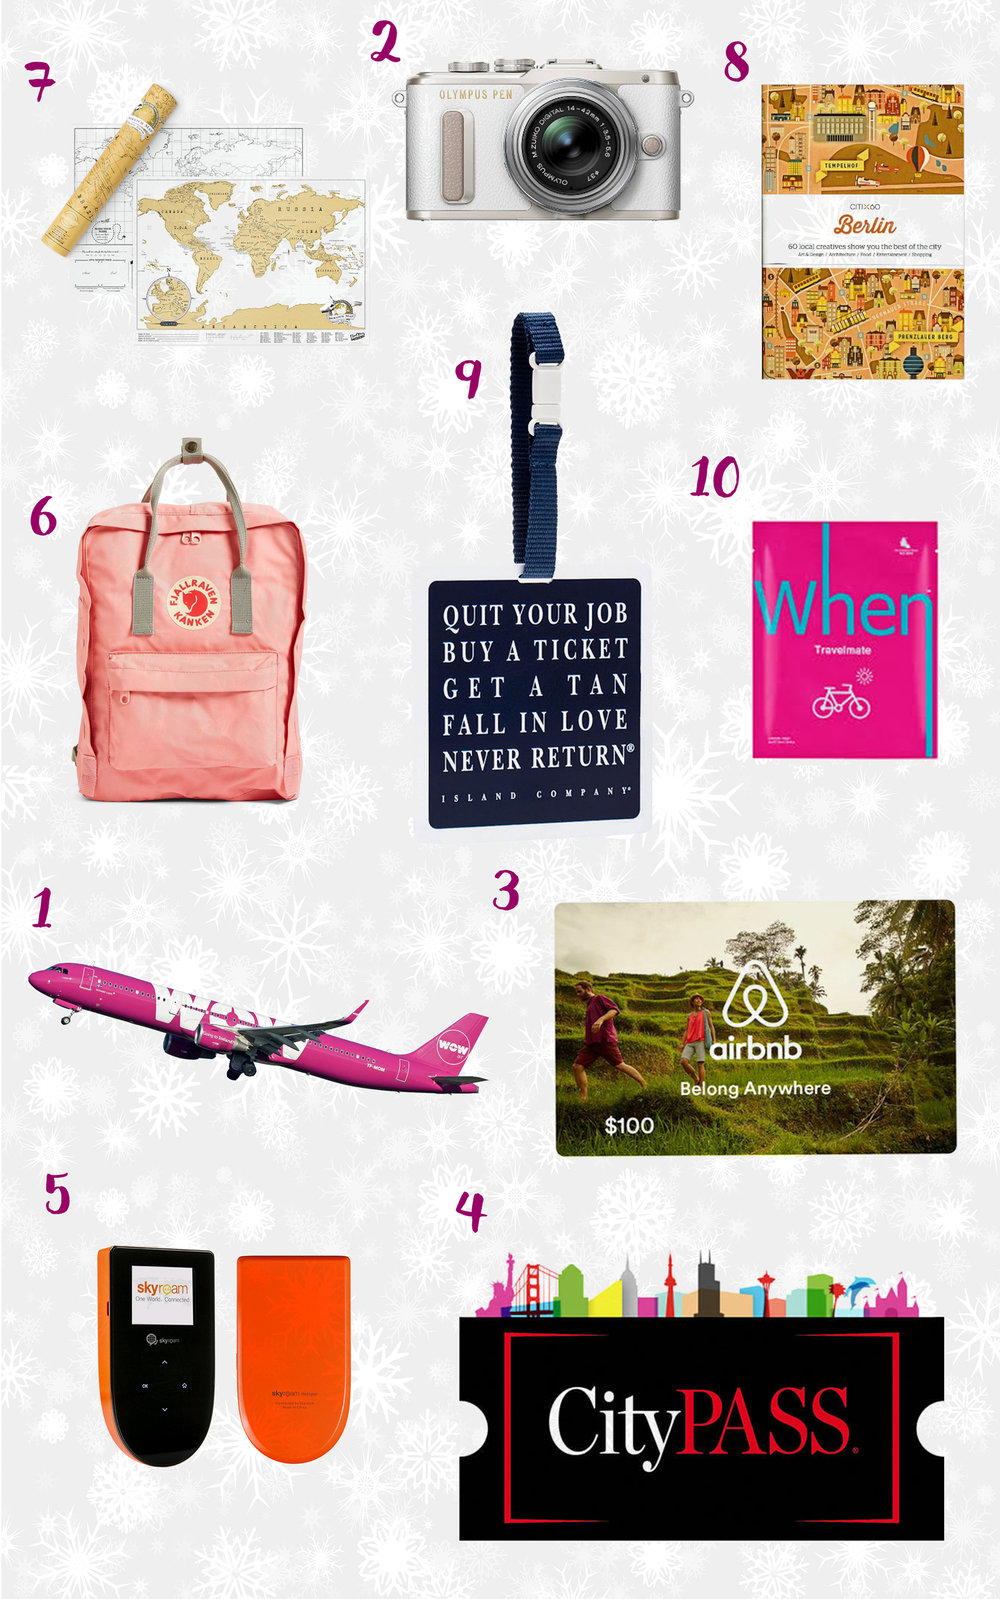 THE BEST TRAVEL GIFTS FOR TRAVEL OBSESSED So Voilà - 10 great gift ideas for the travel obsessed